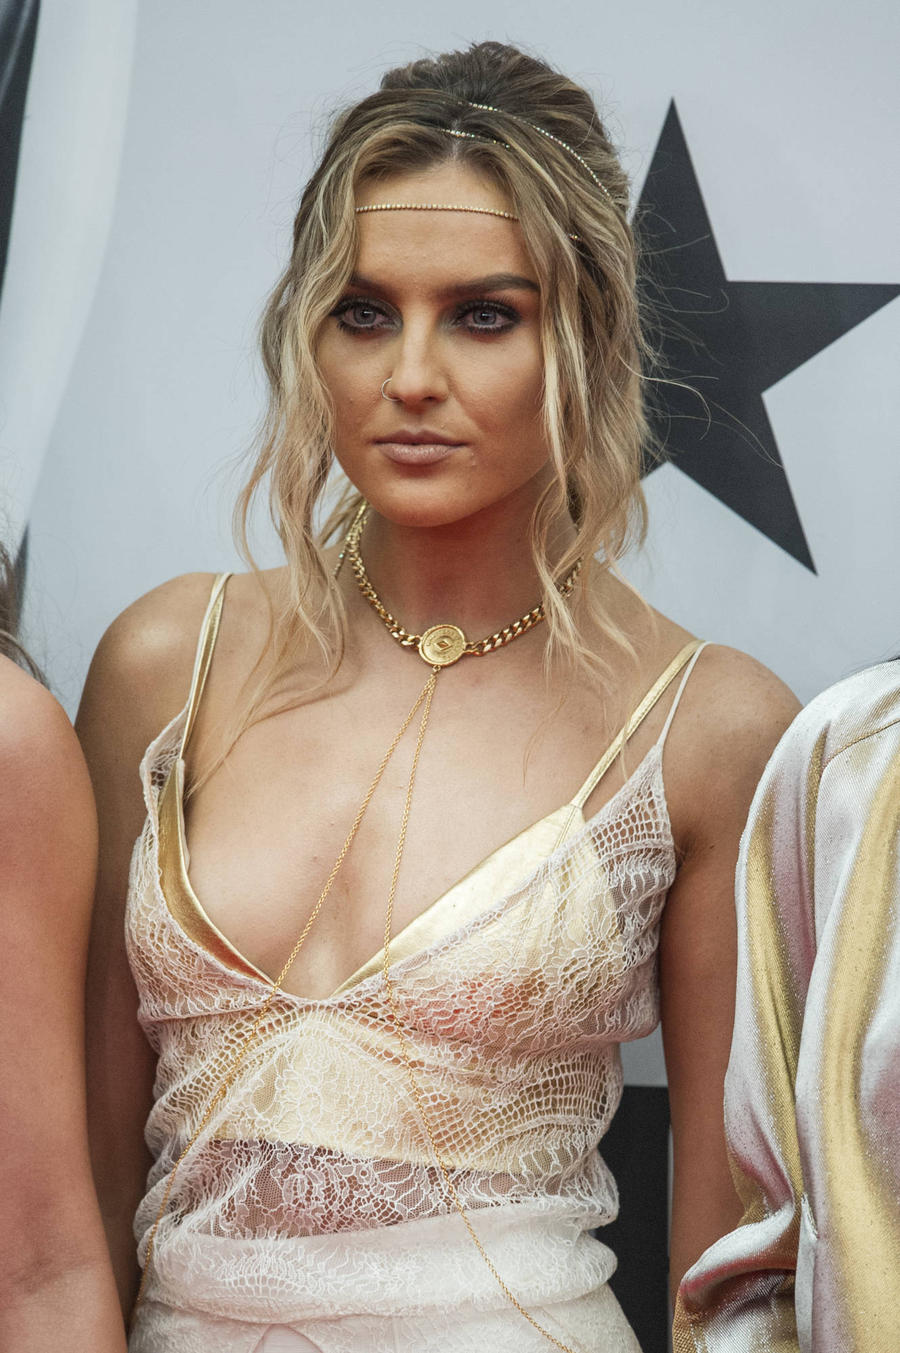 Perrie Edwards Hits Out At Online Trolls